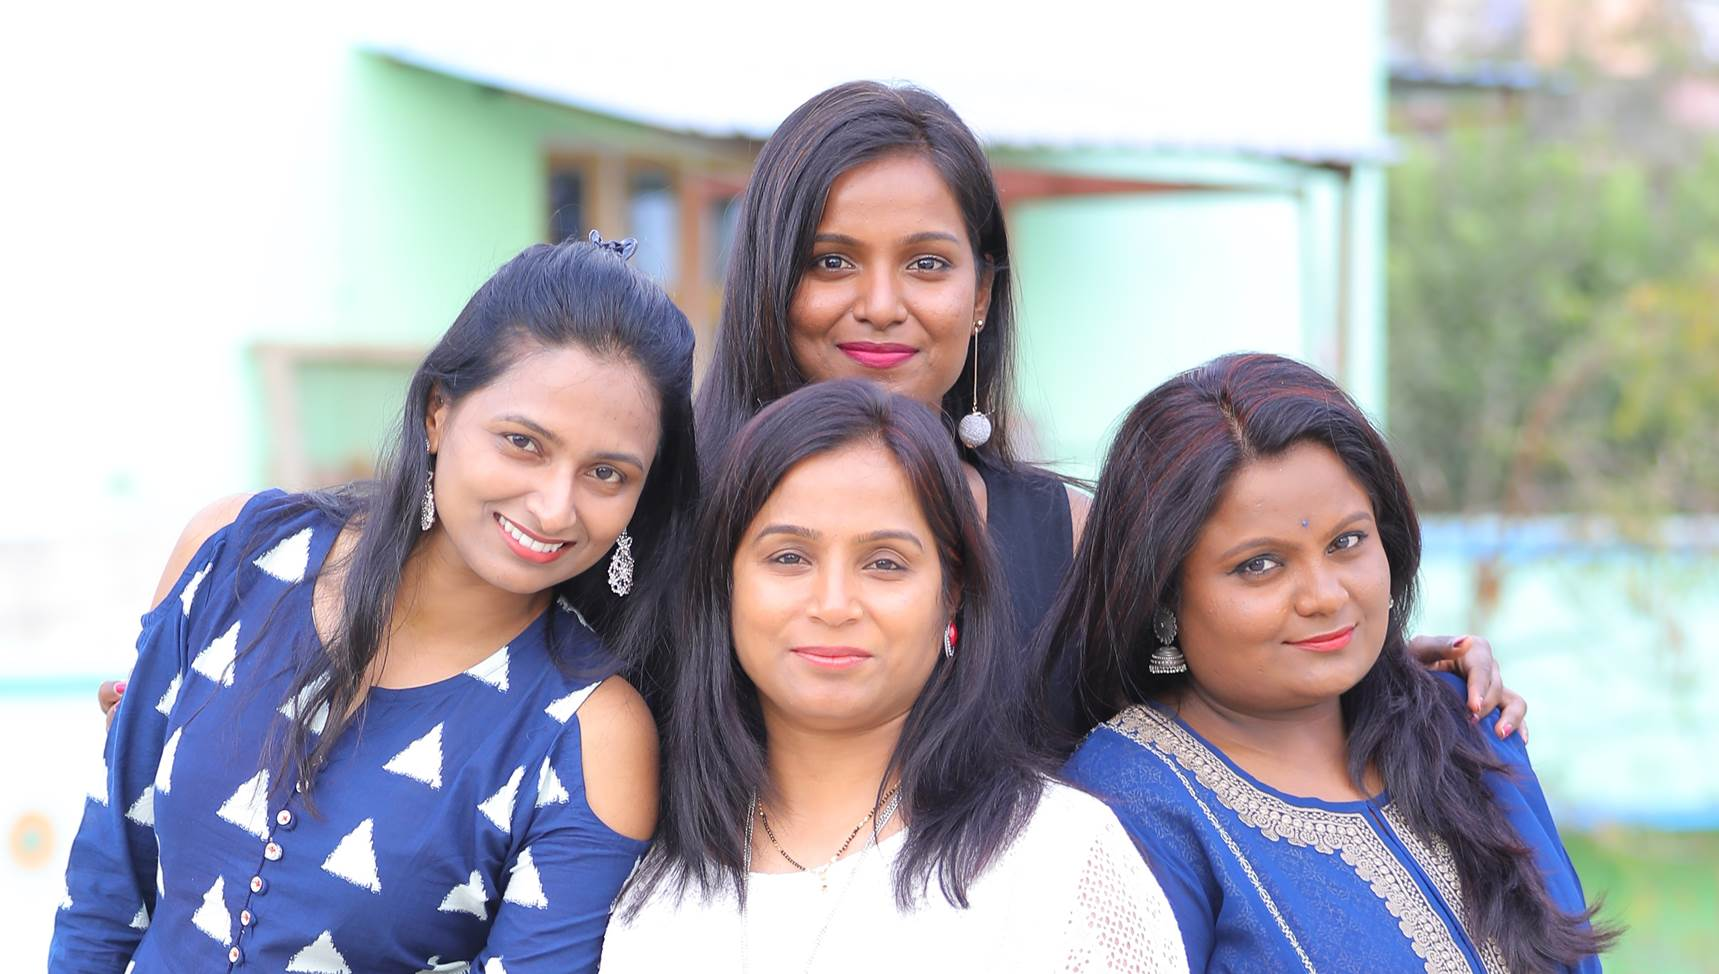 Bank of Ireland Risk Innovation Manager Champa Ramaiah and her sisters